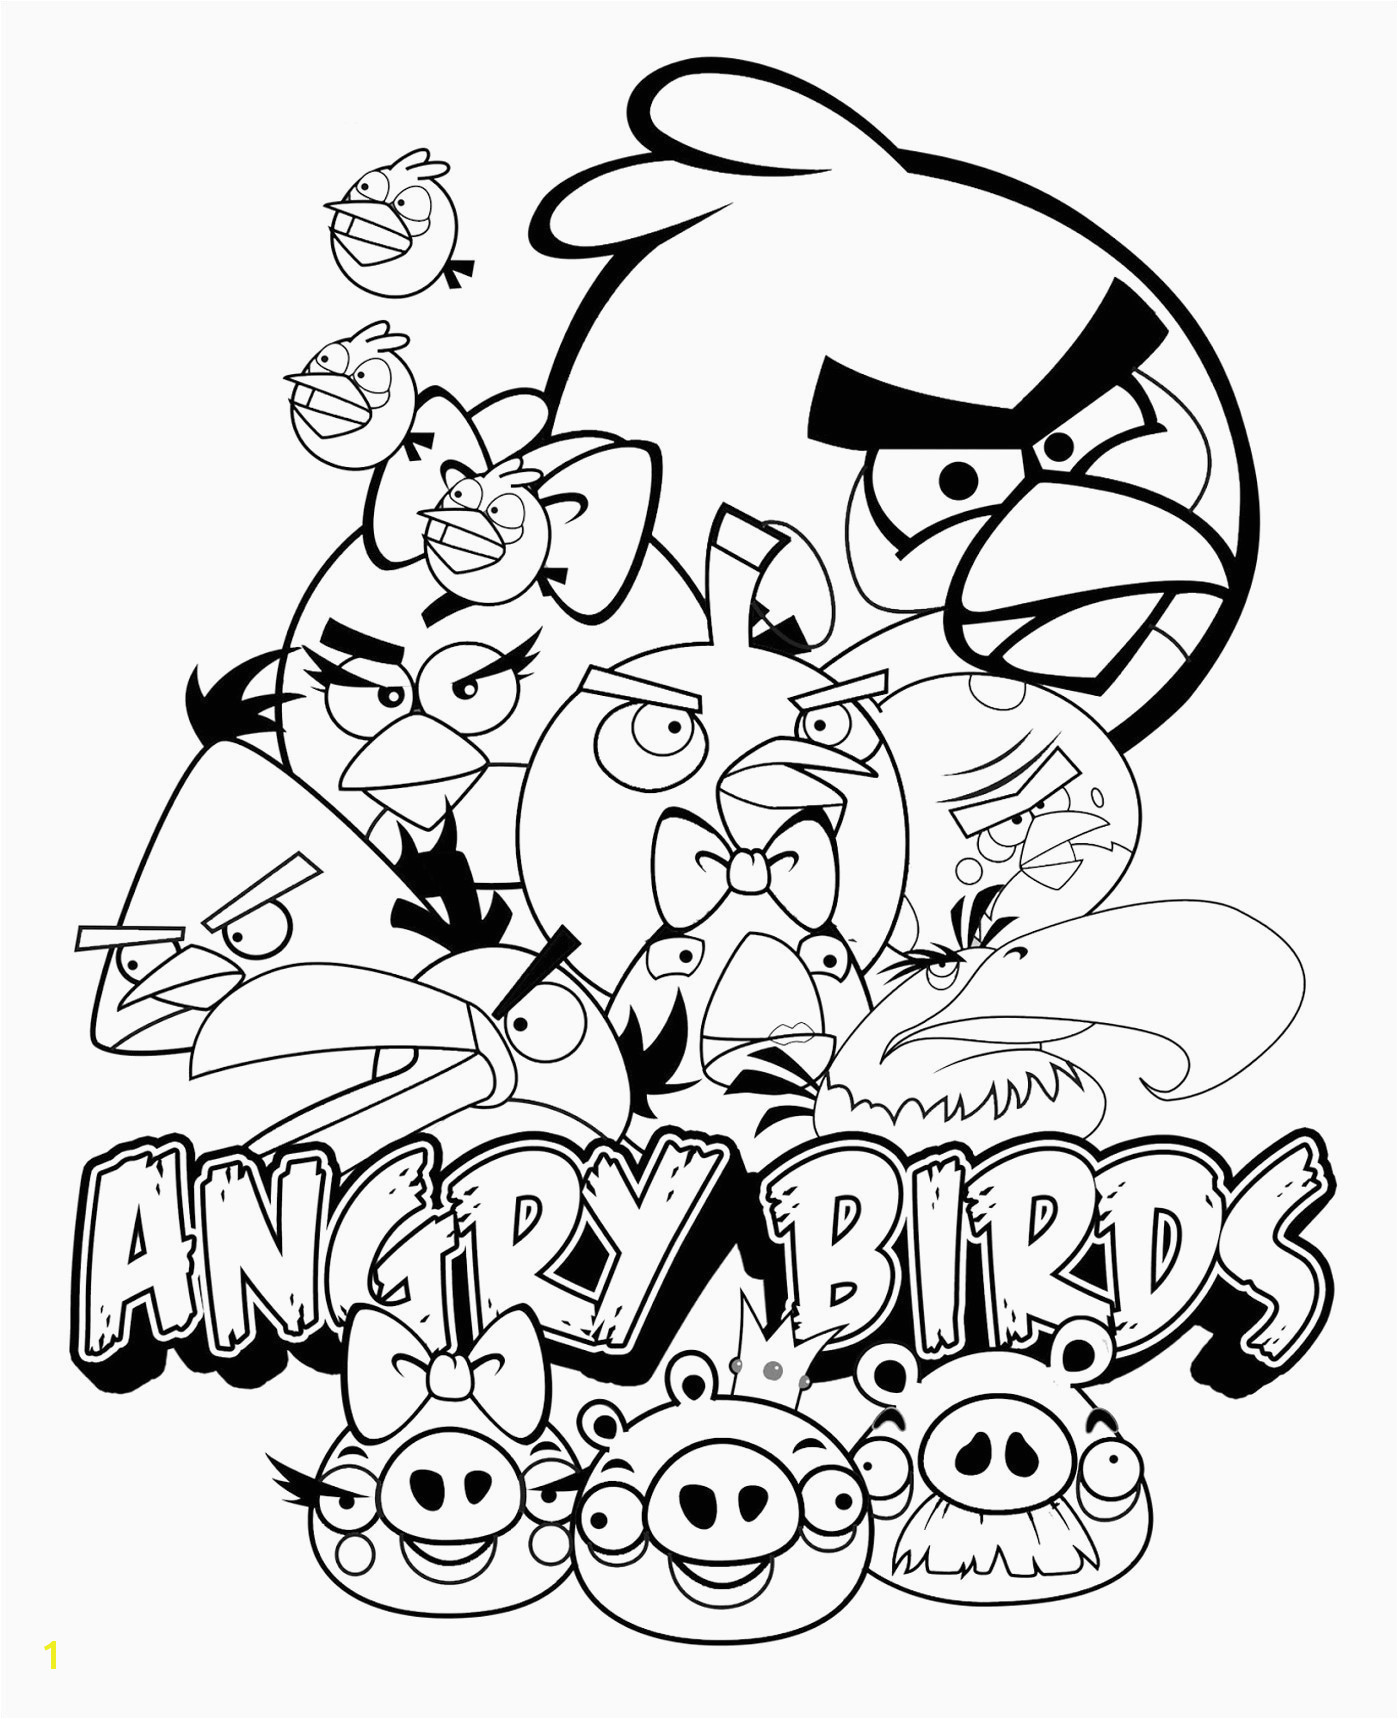 Angry Birds Bad Piggies Coloring Pages Unique Angry Birds Star Wars Coloring Pages Flower Coloring Pages